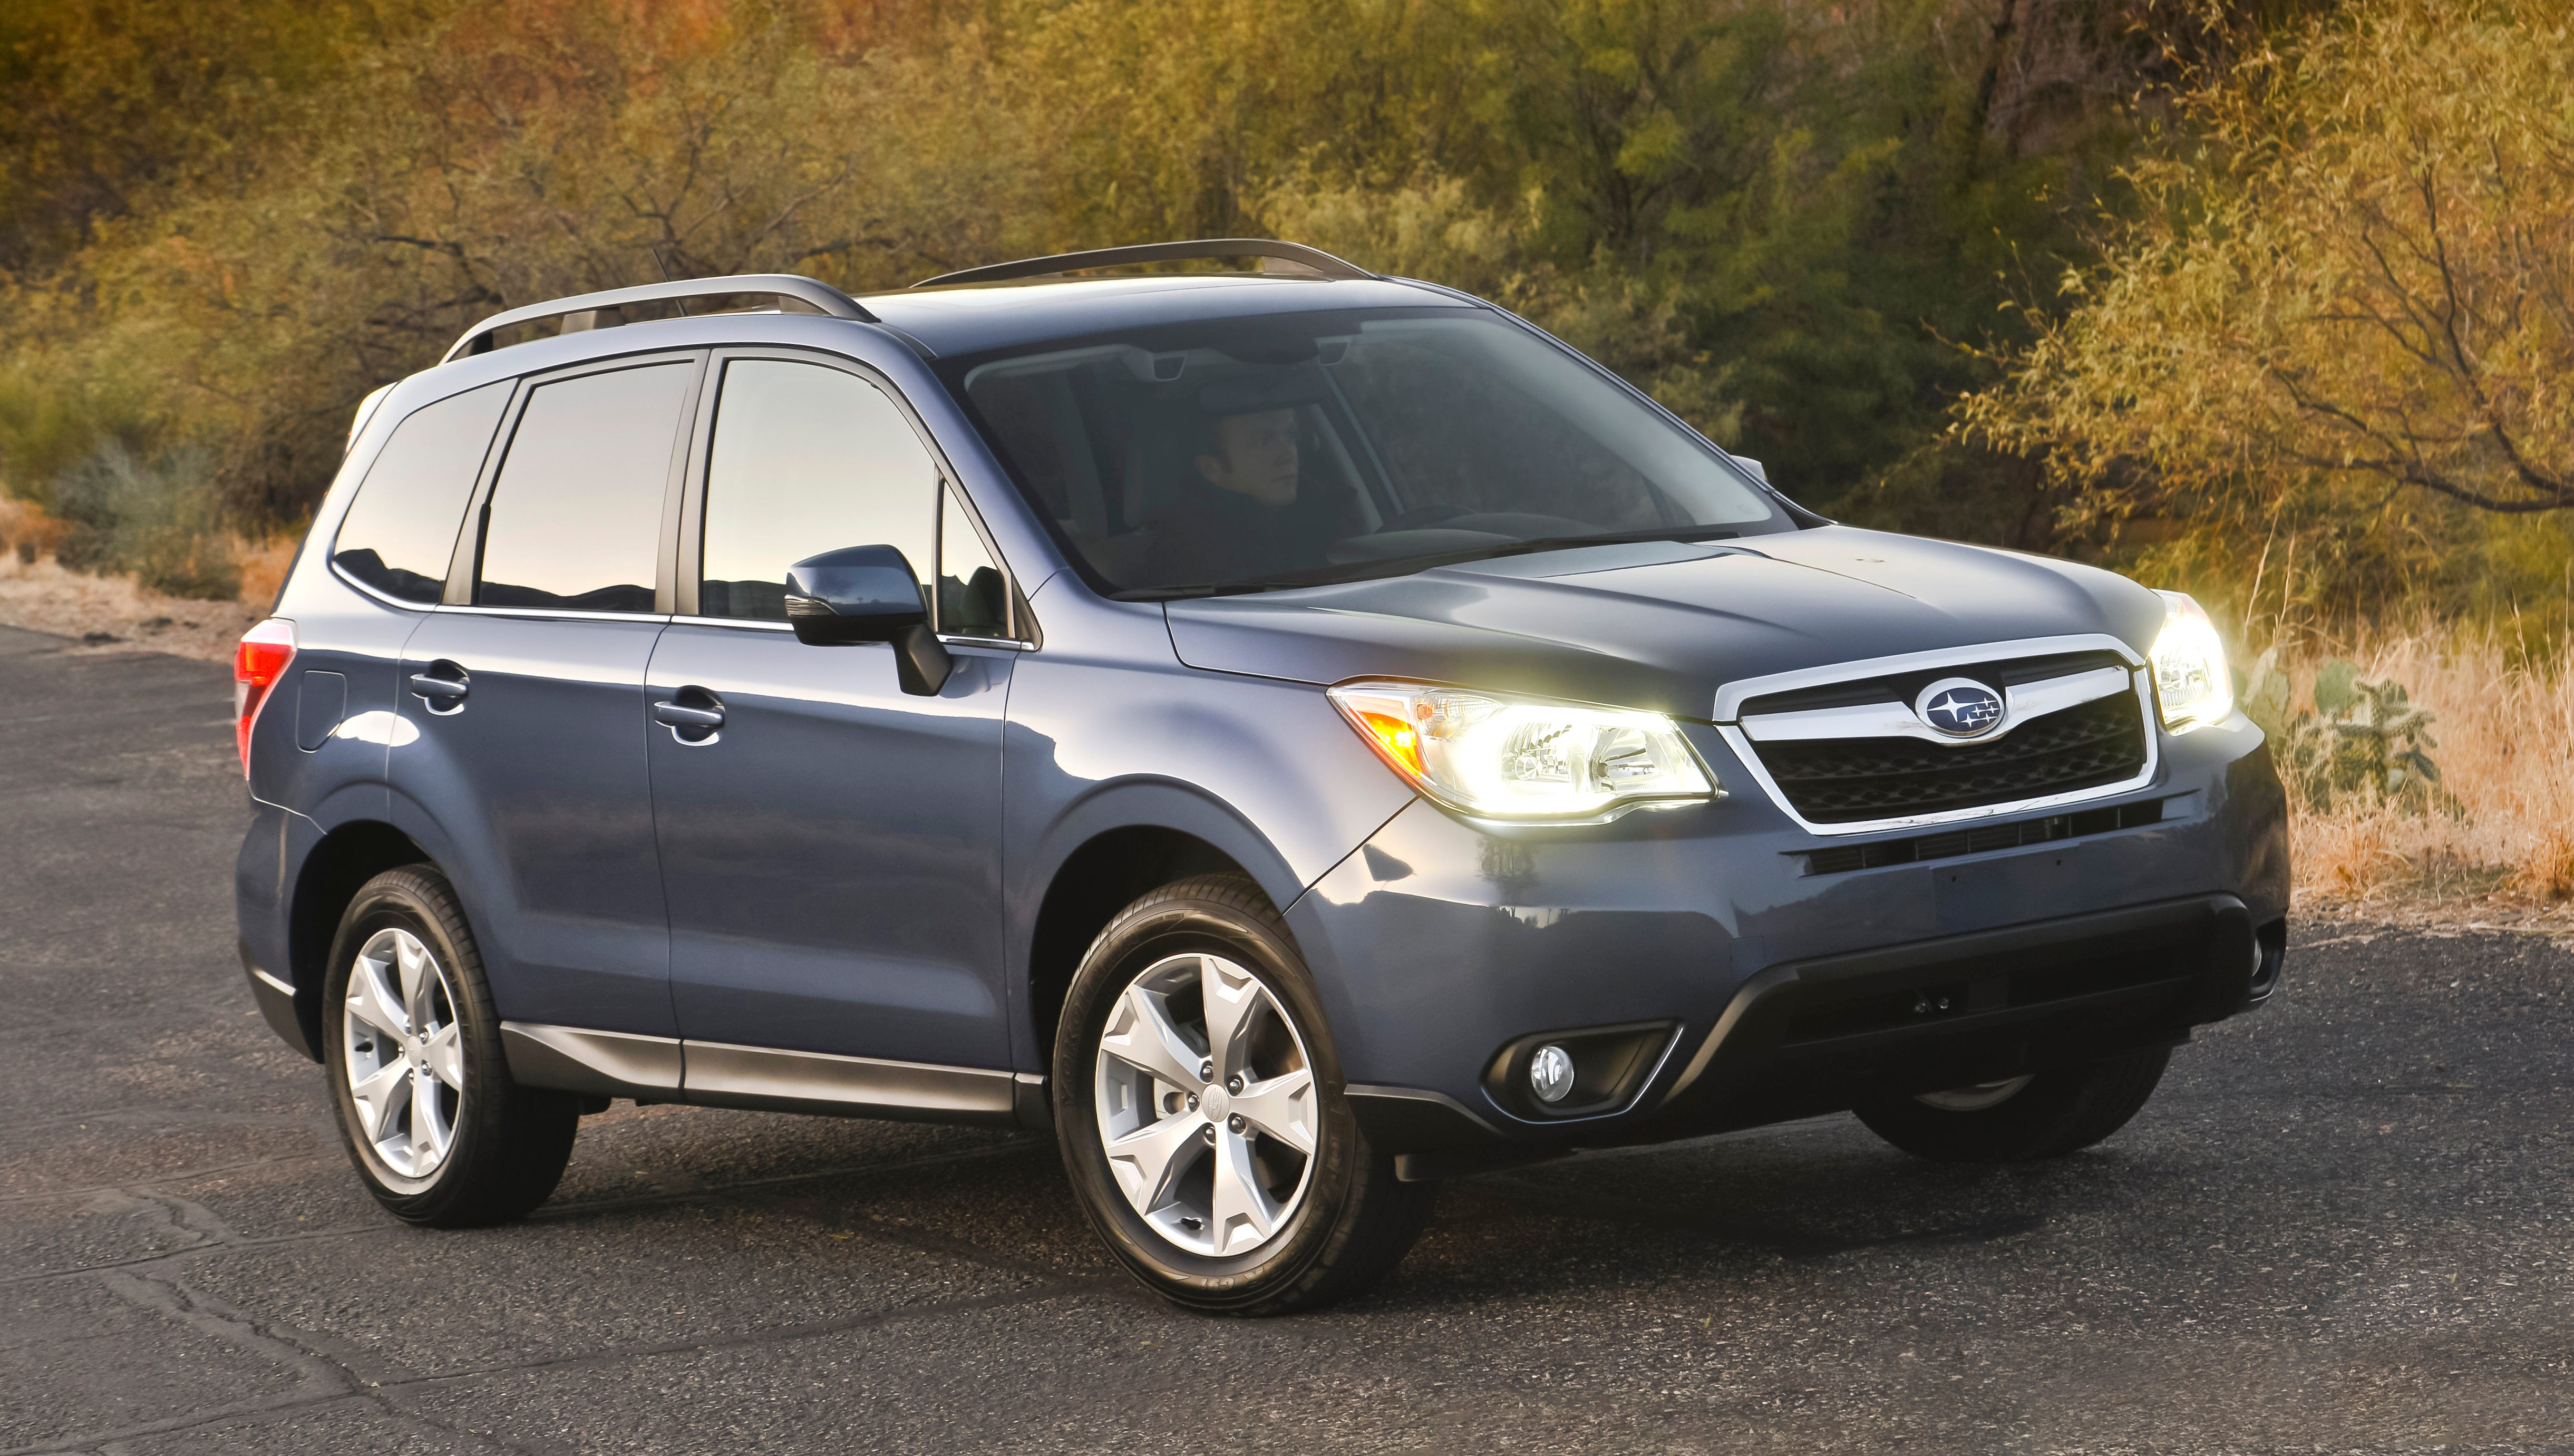 This year's Edmunds.com Top 10 Best Cars for Short Drivers includes the new Subaru Forester, starting at $22.790 (redesigned 2014 shown here).